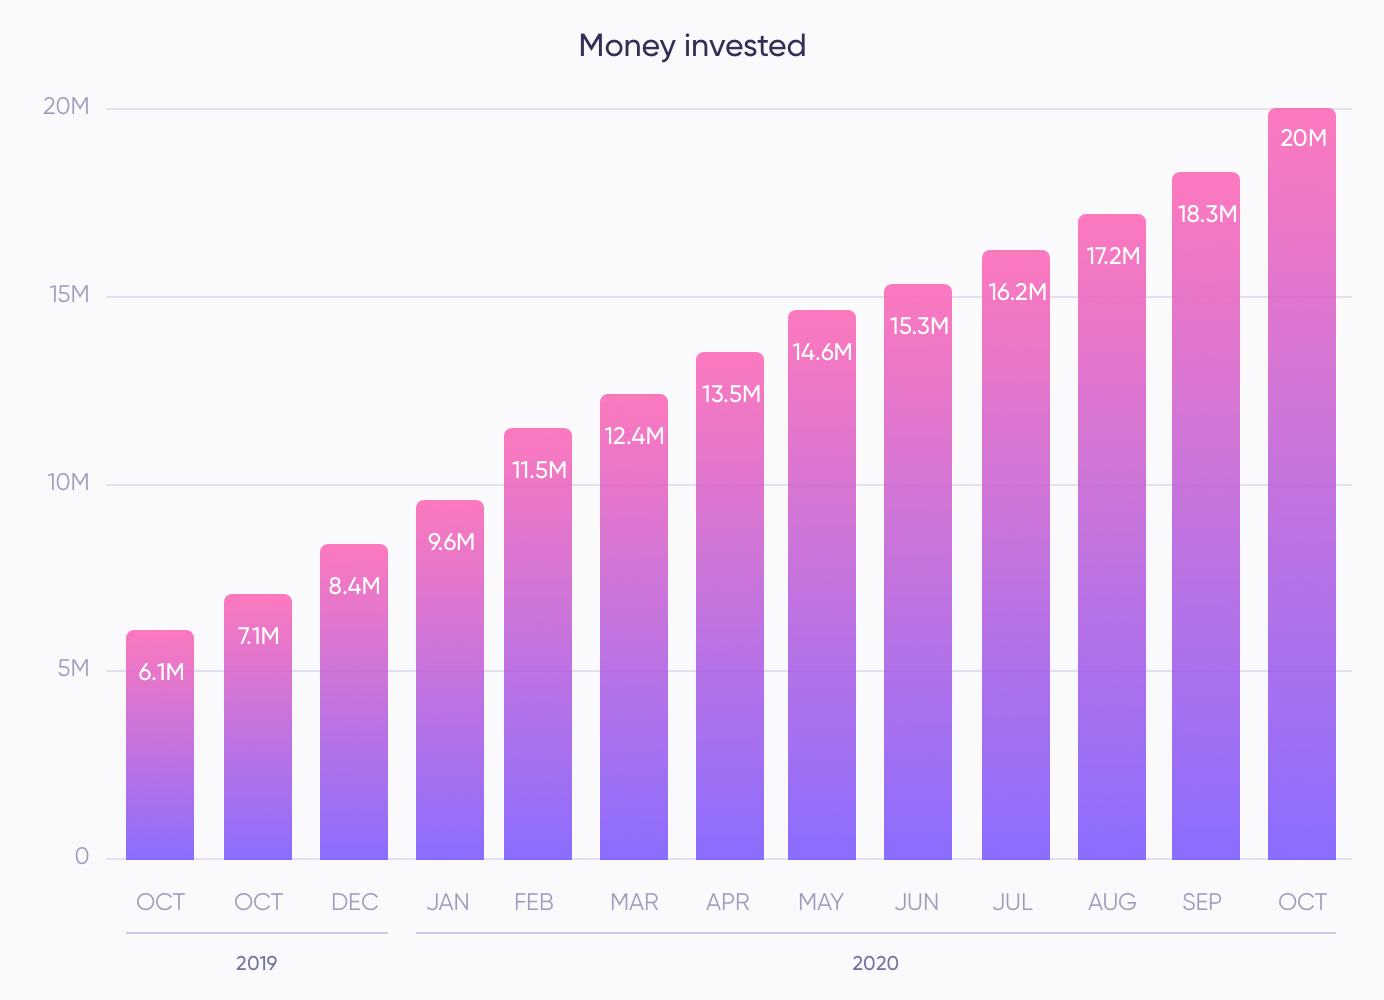 Money invested during October